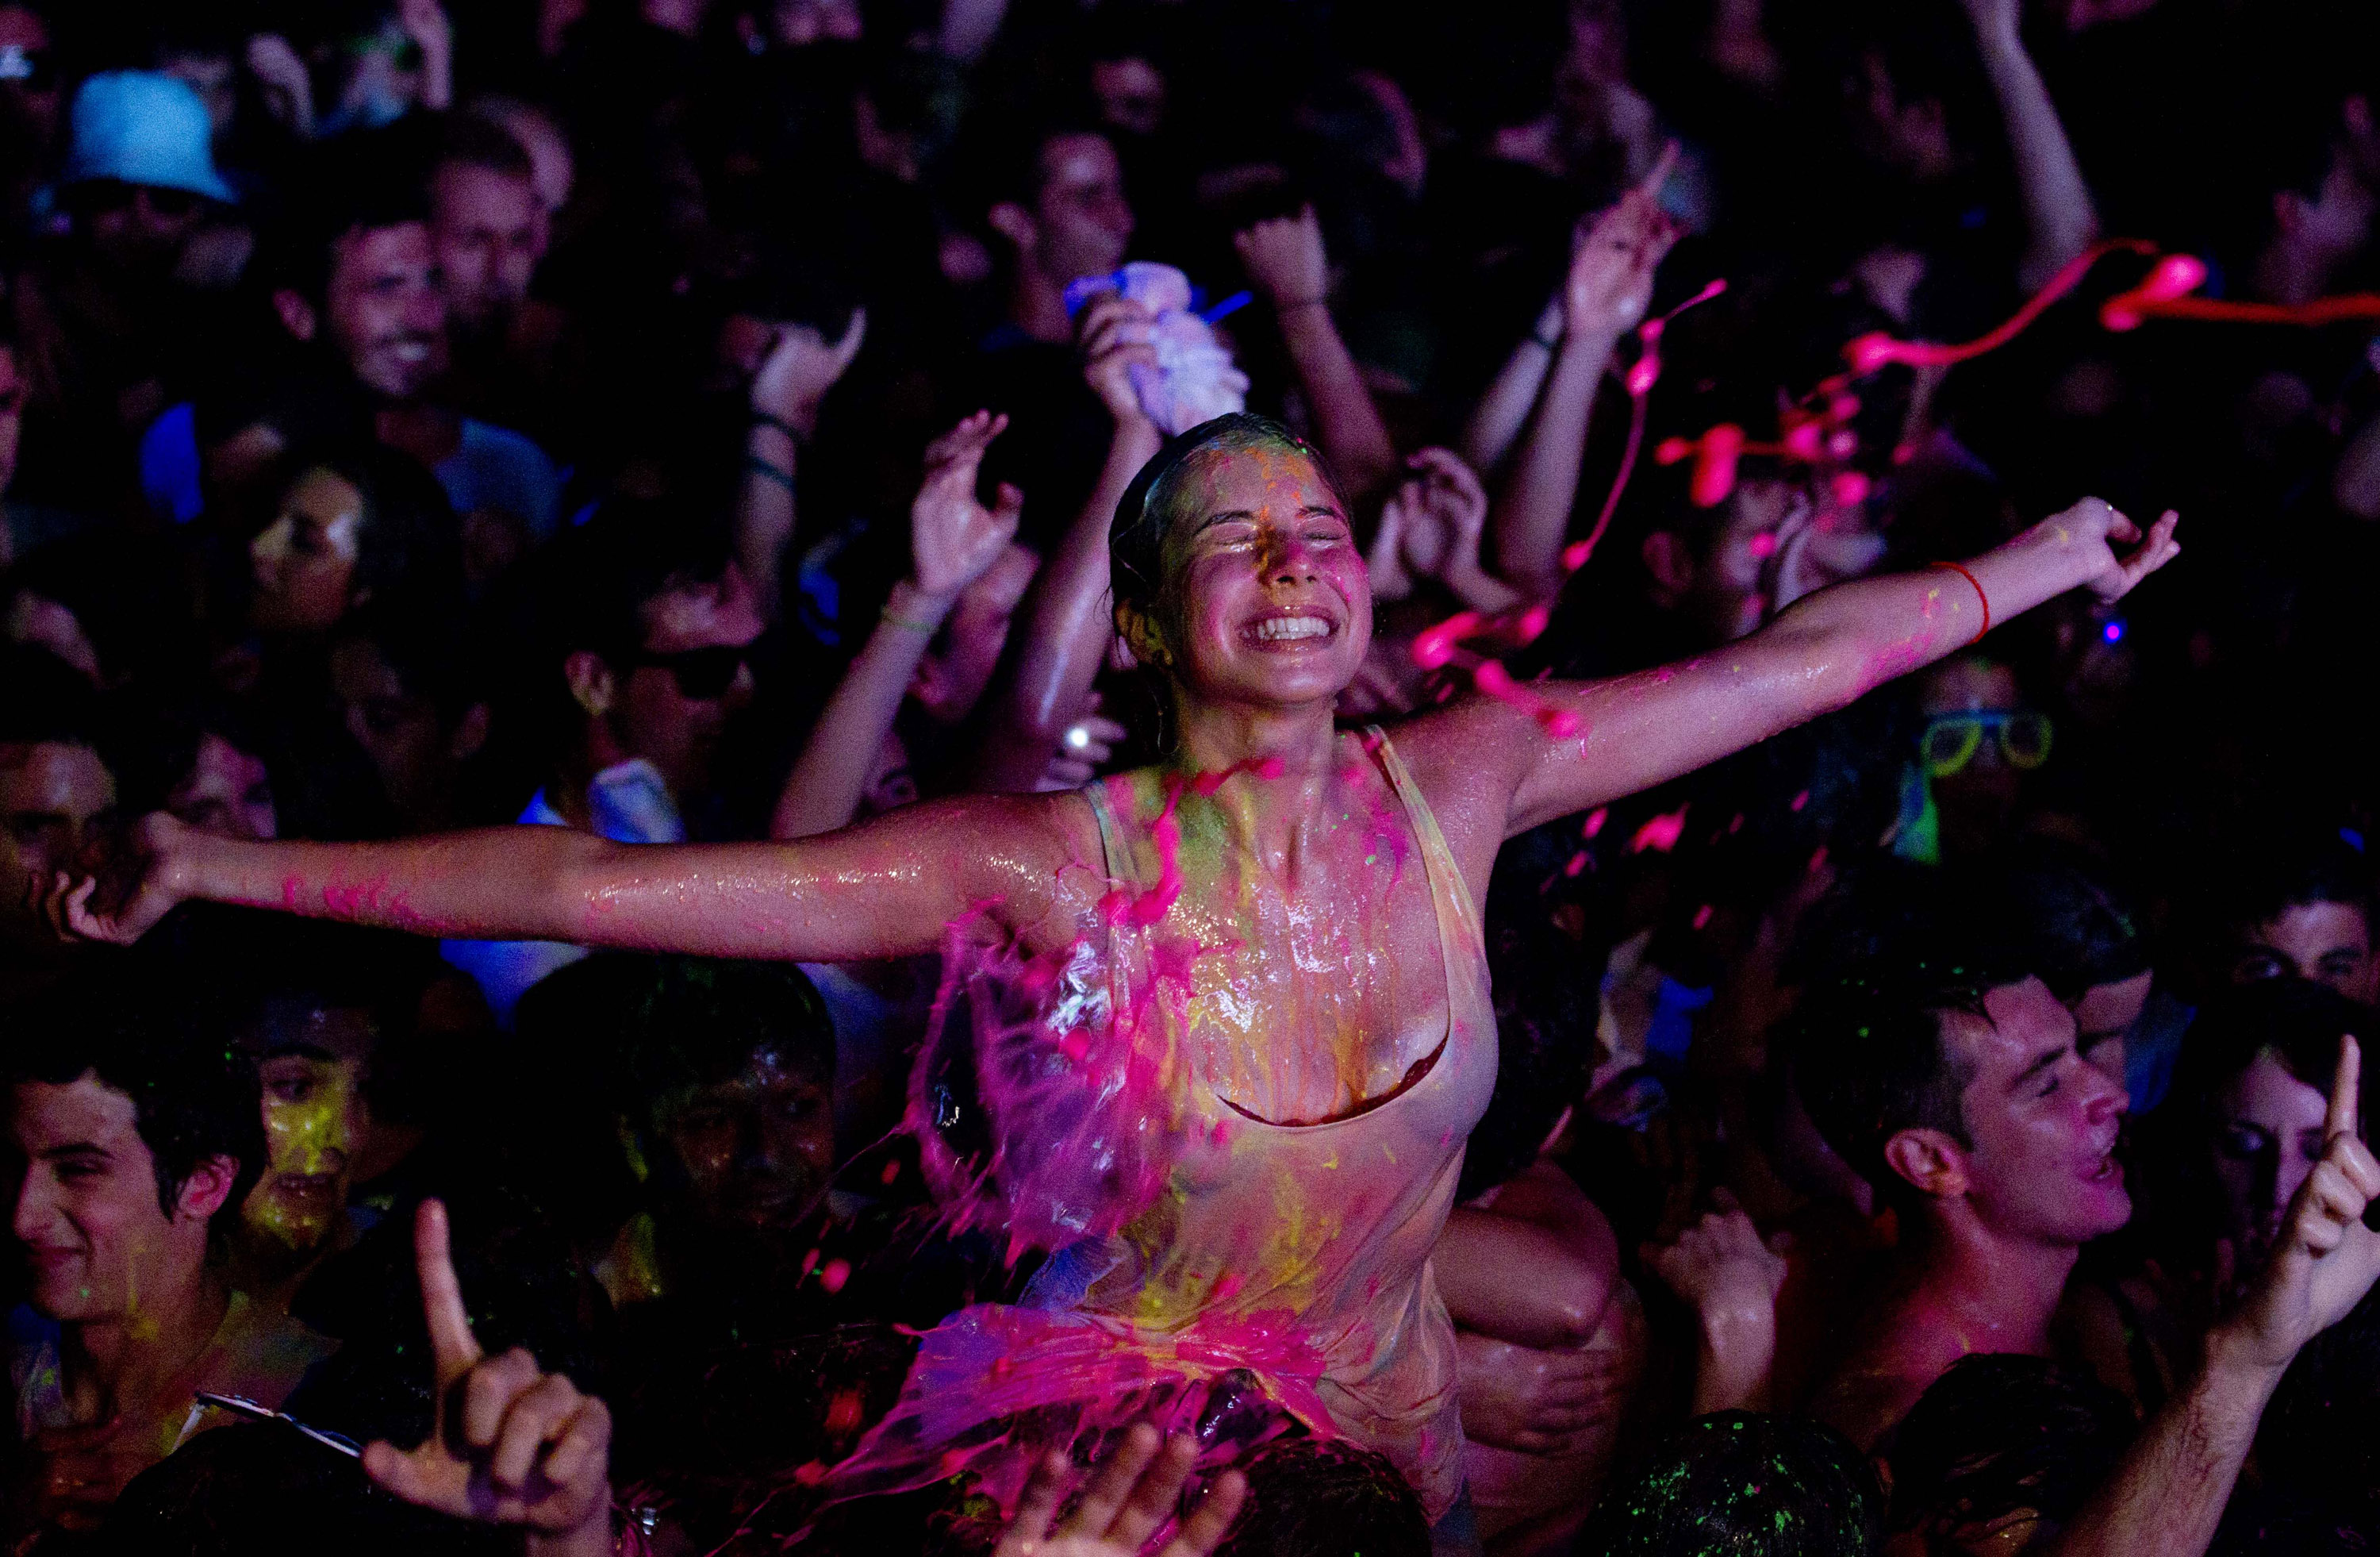 a reveler reacts during a glow paint party in the early